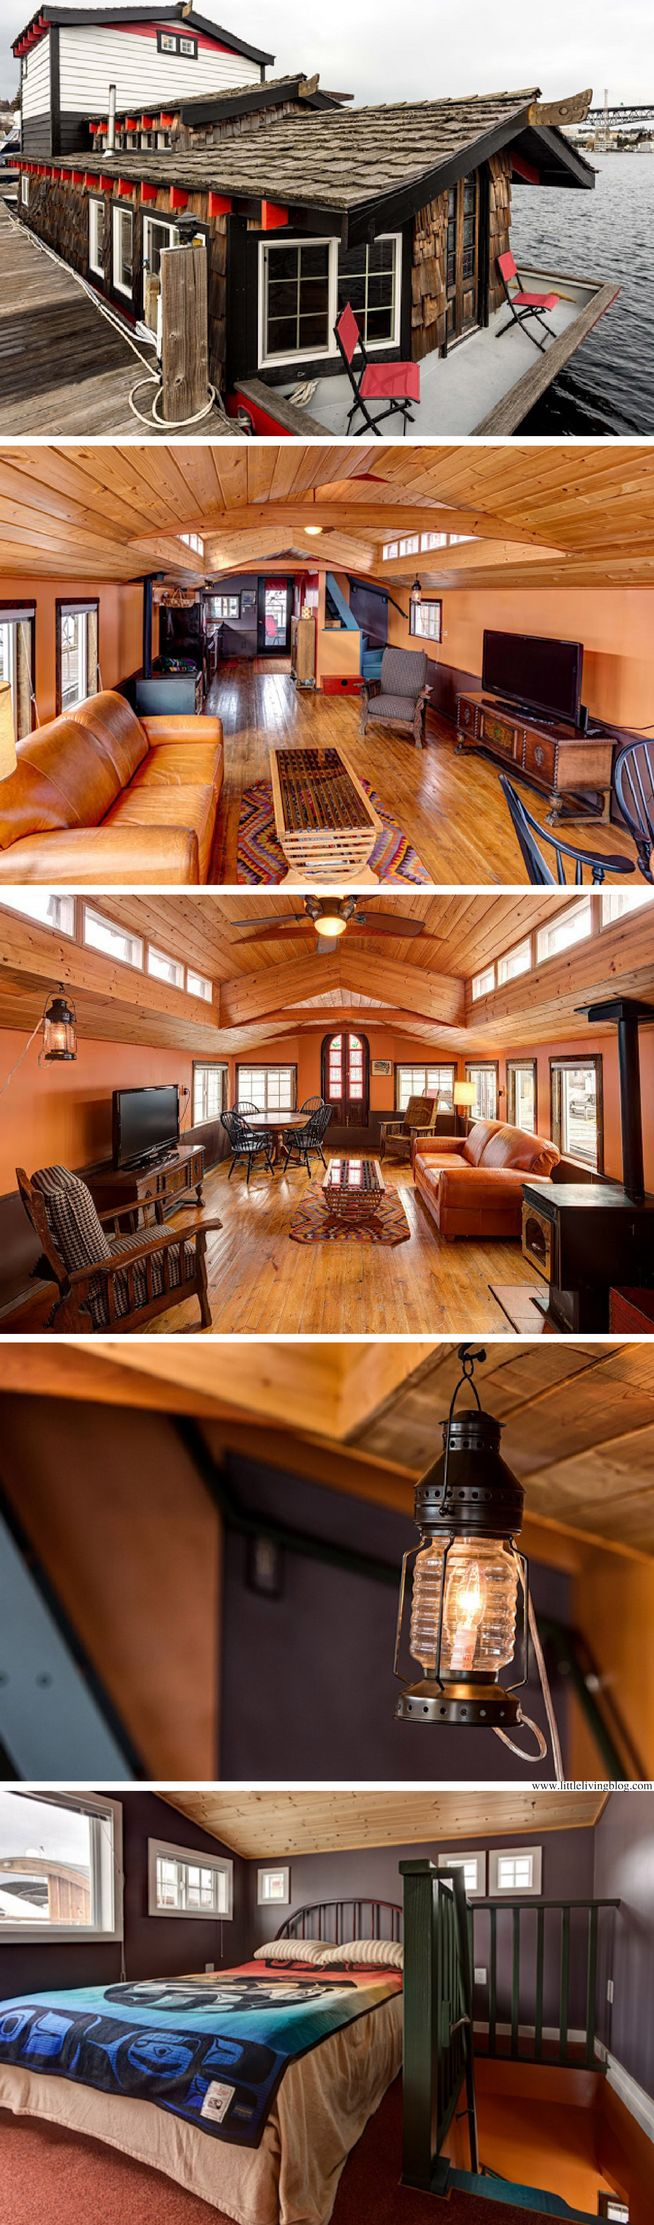 CLERESTORY WINDOWS - The Haida House: a 600+ sq ft houseboat in the Seattle Harbor